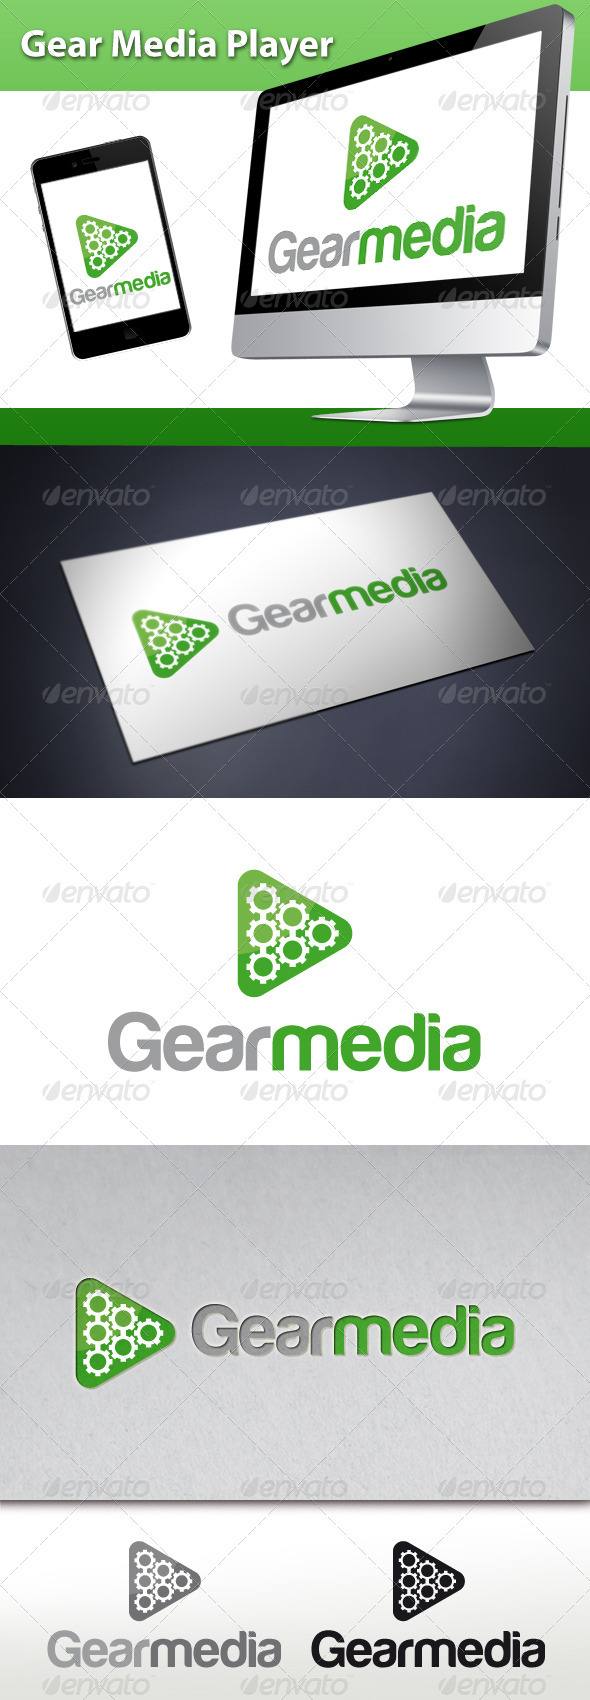 Gear Media Player Logo - Abstract Logo Templates